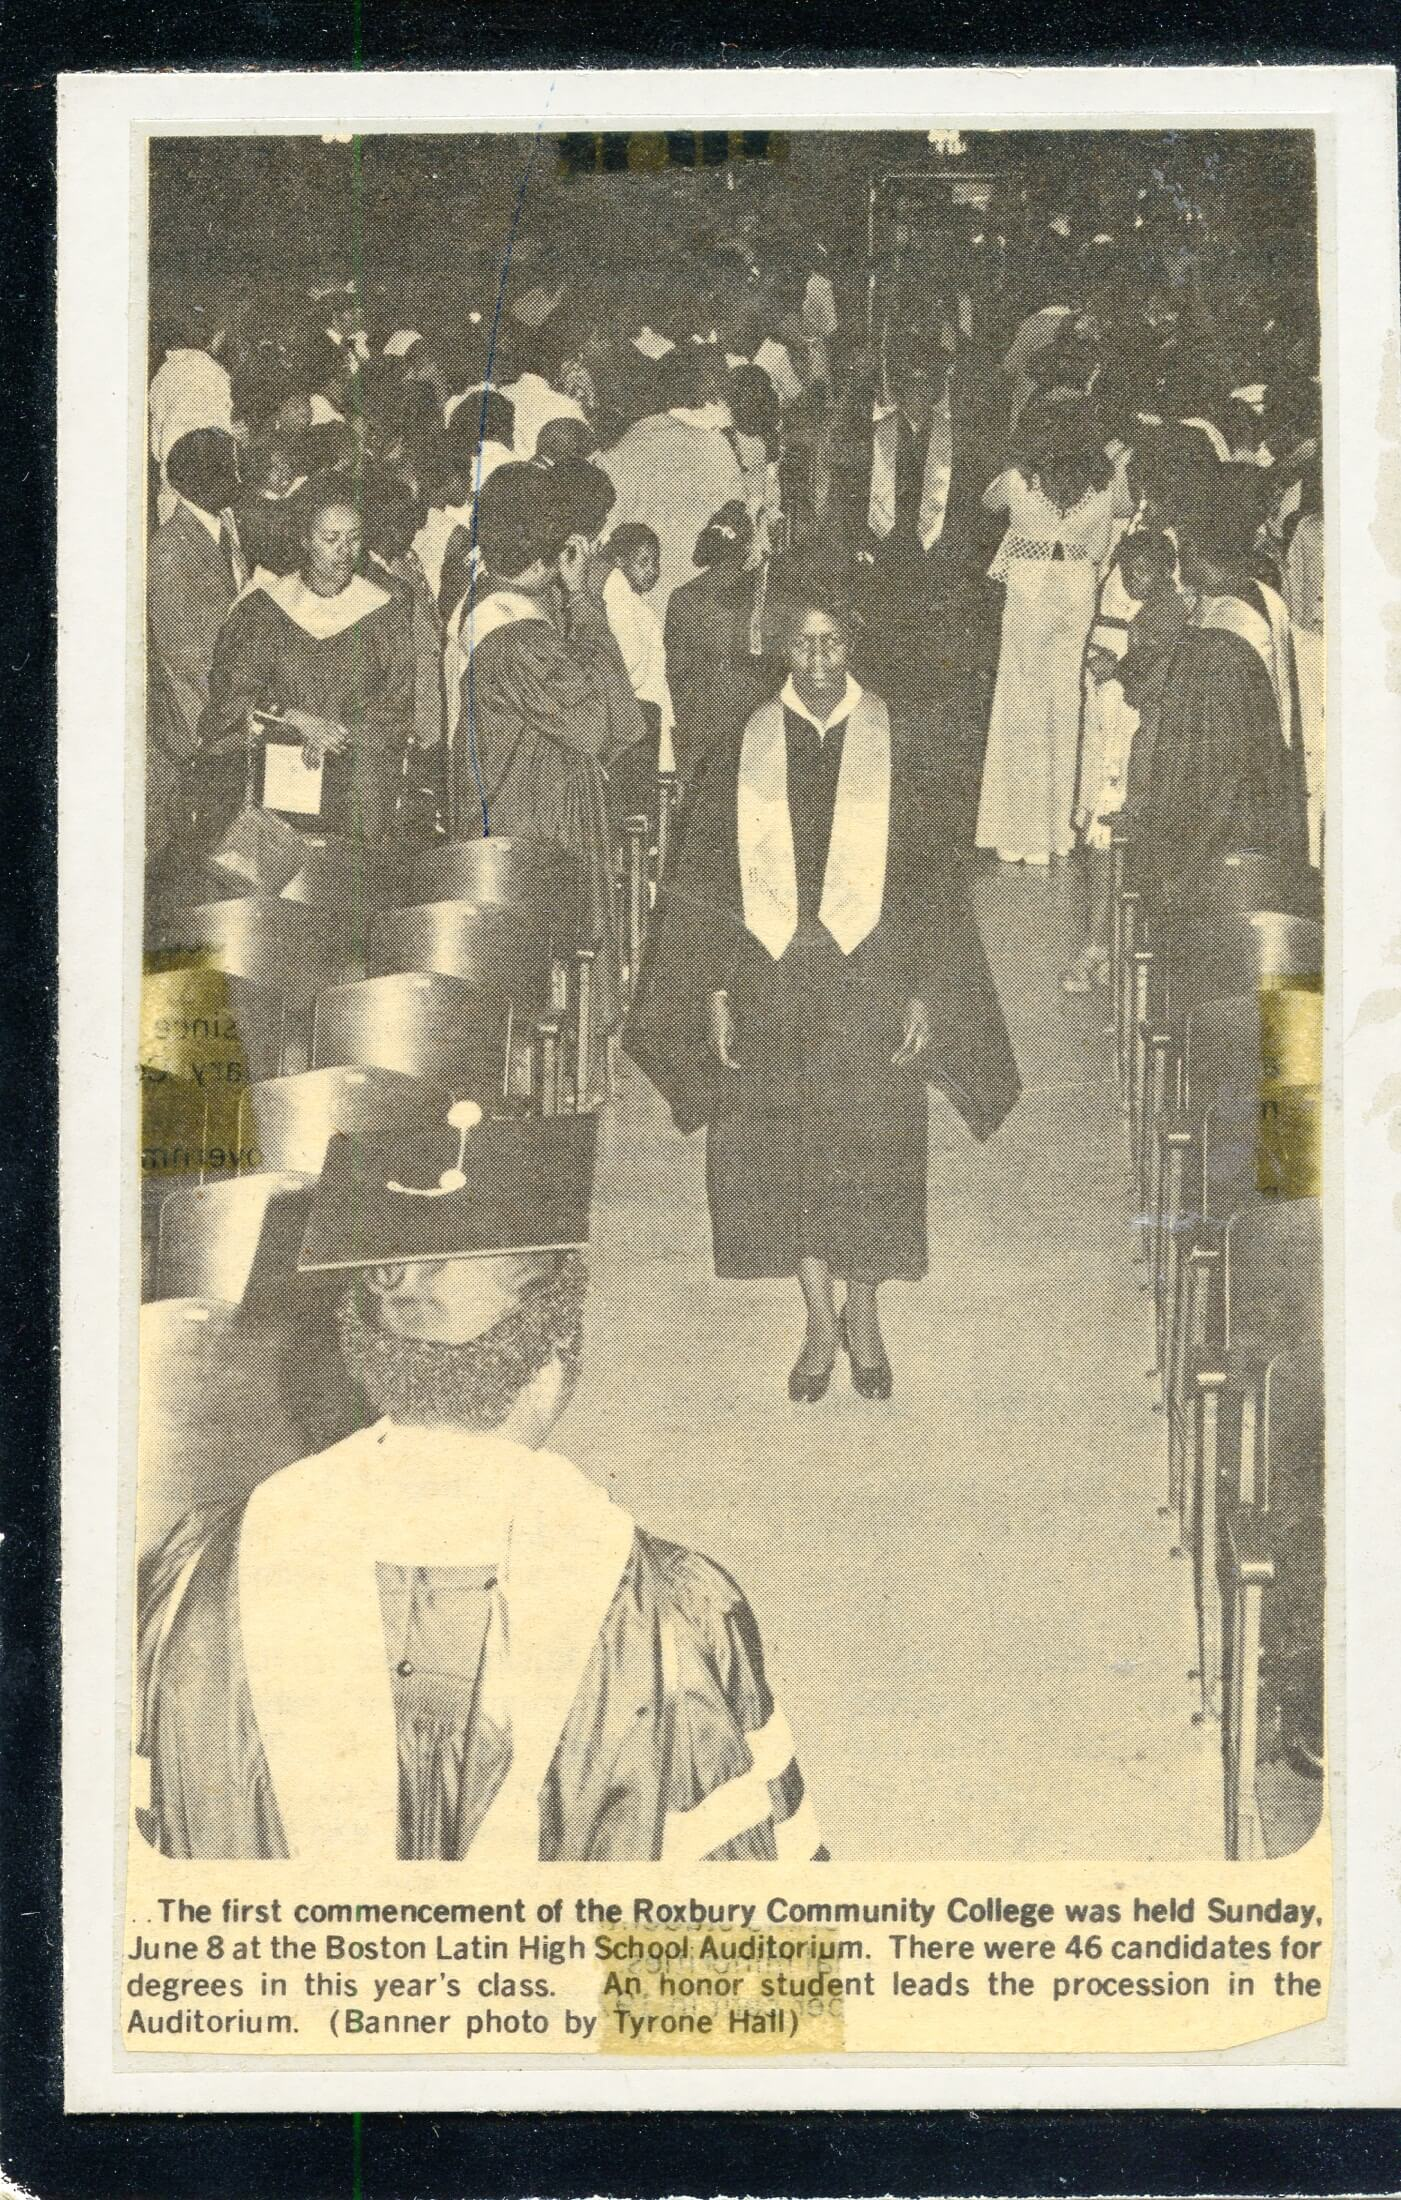 STUDENTS AT THE FIRST COMMENCEMENT, ROXBURY COMMUNITY COLLEGE (1975)